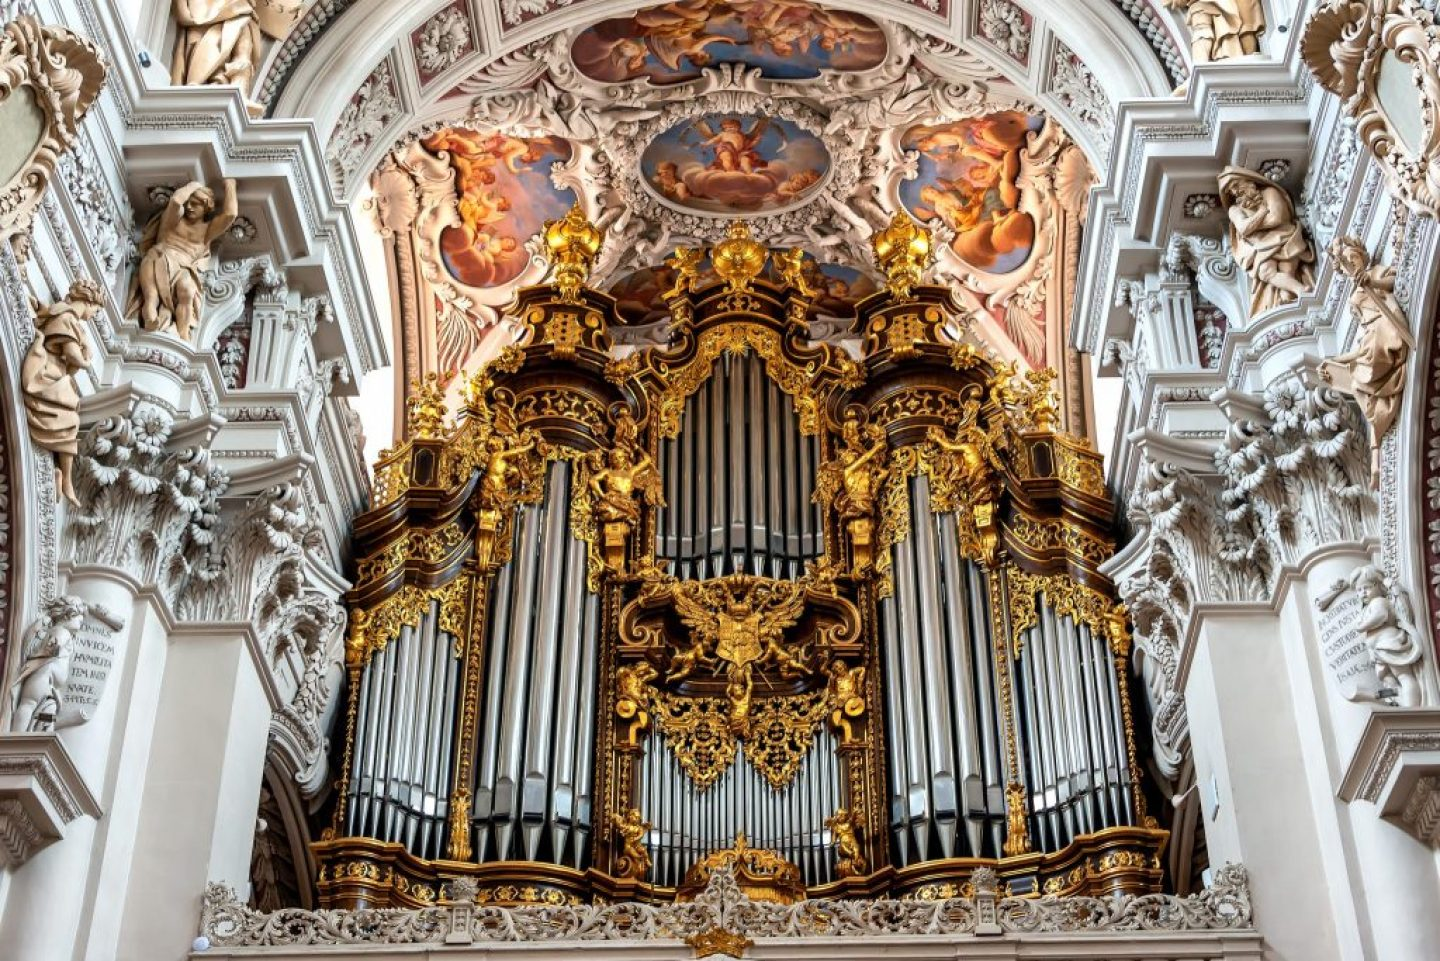 St. Stephan's Cathedral in Passau Germany